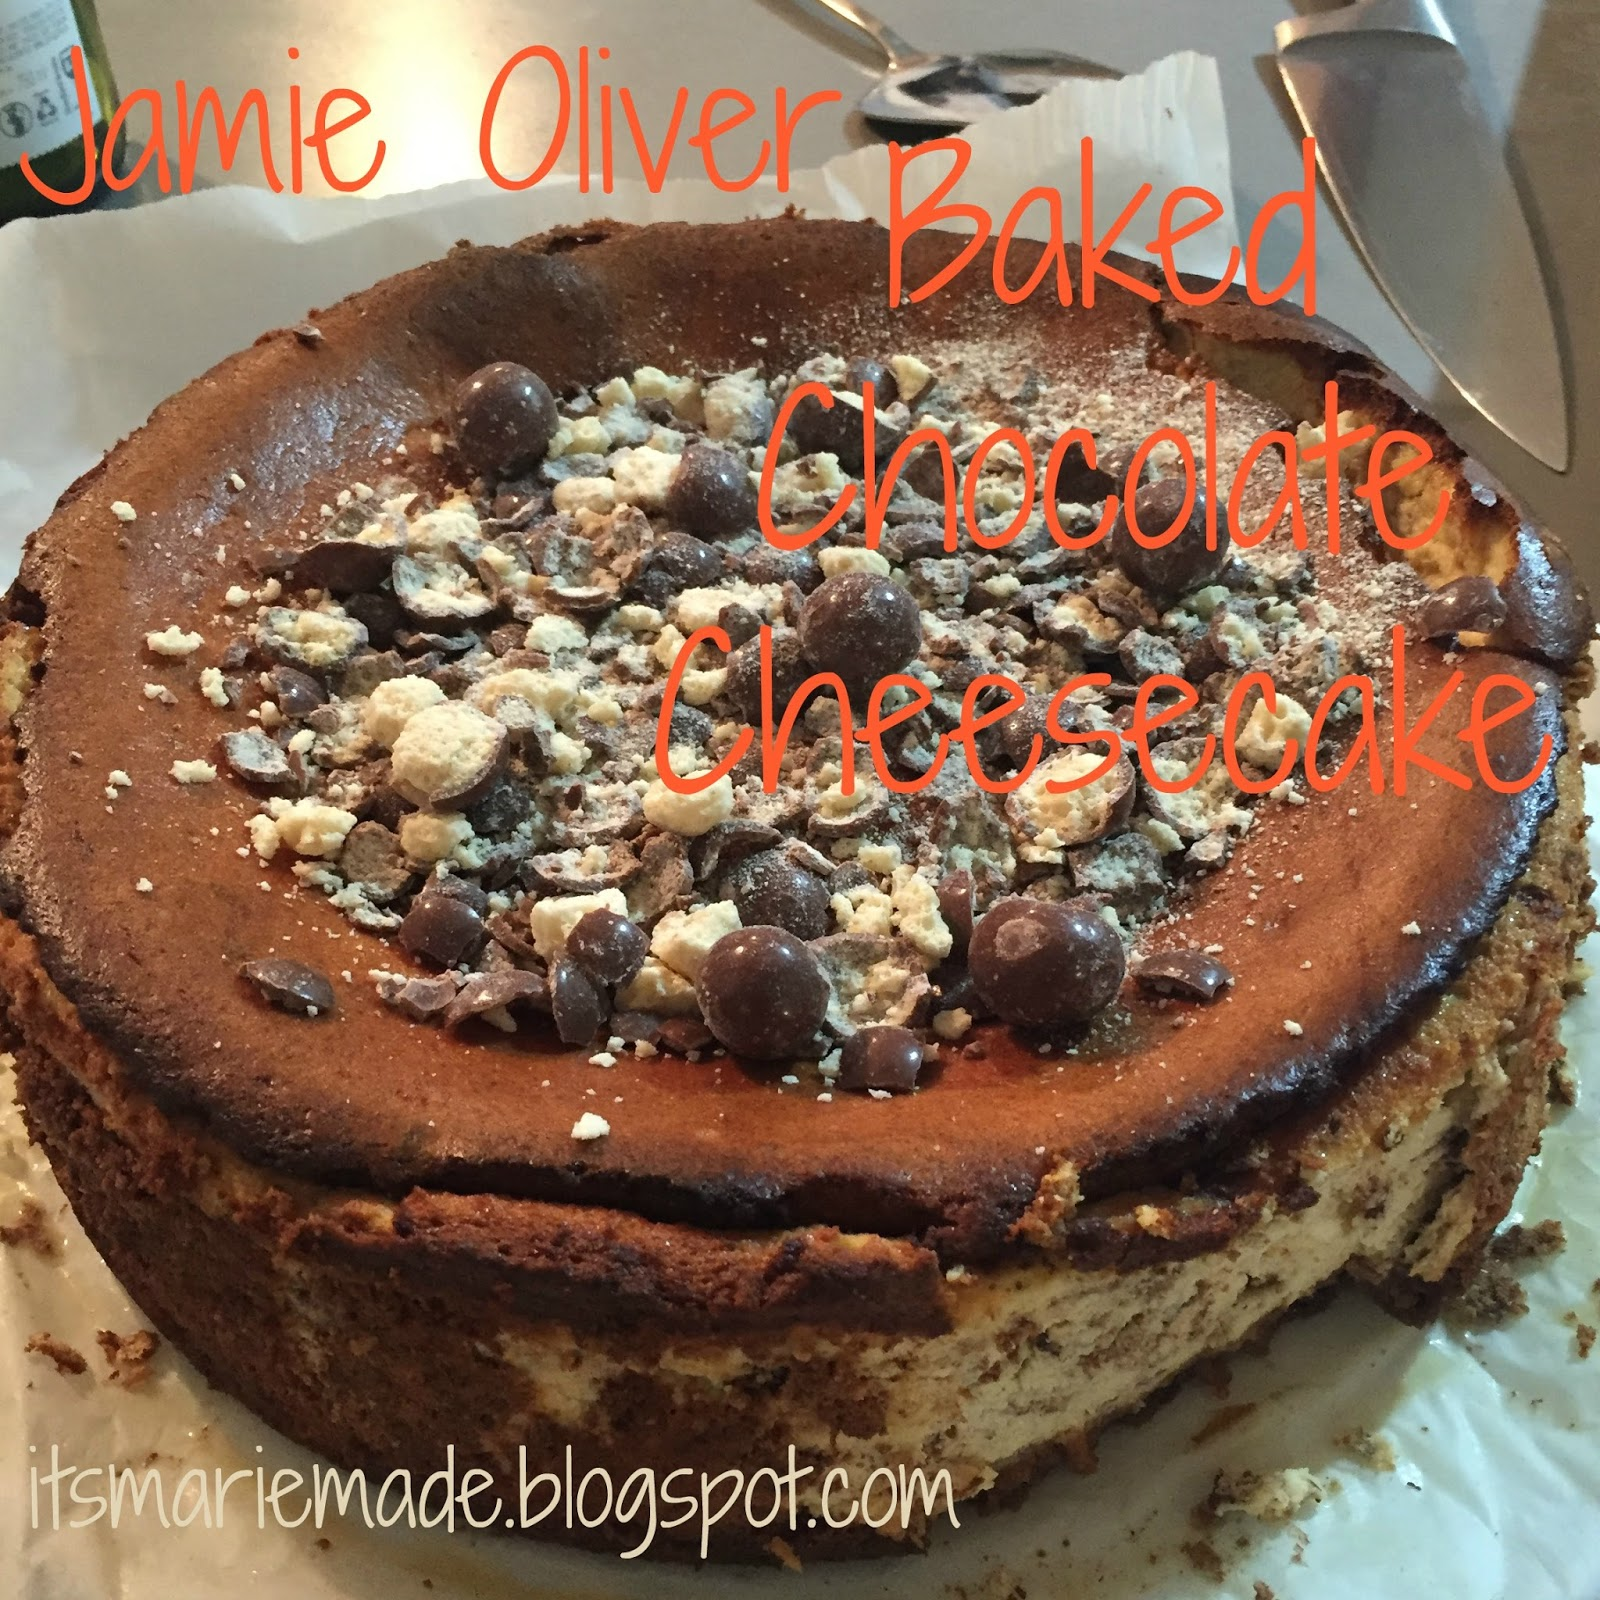 Its marie made recipe jamie oliver baked chocolate cheesecake recipe jamie oliver baked chocolate cheesecake forumfinder Choice Image